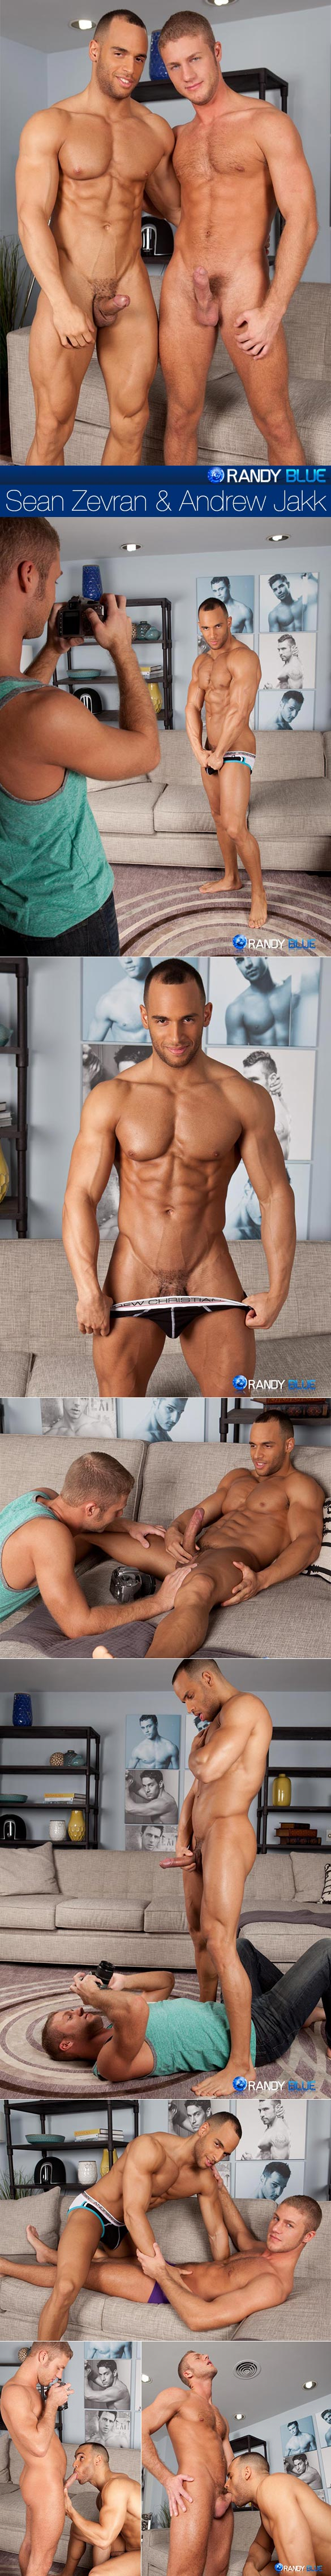 RandyBlue: Andrew Jakk gets fucked by Sean Zevran